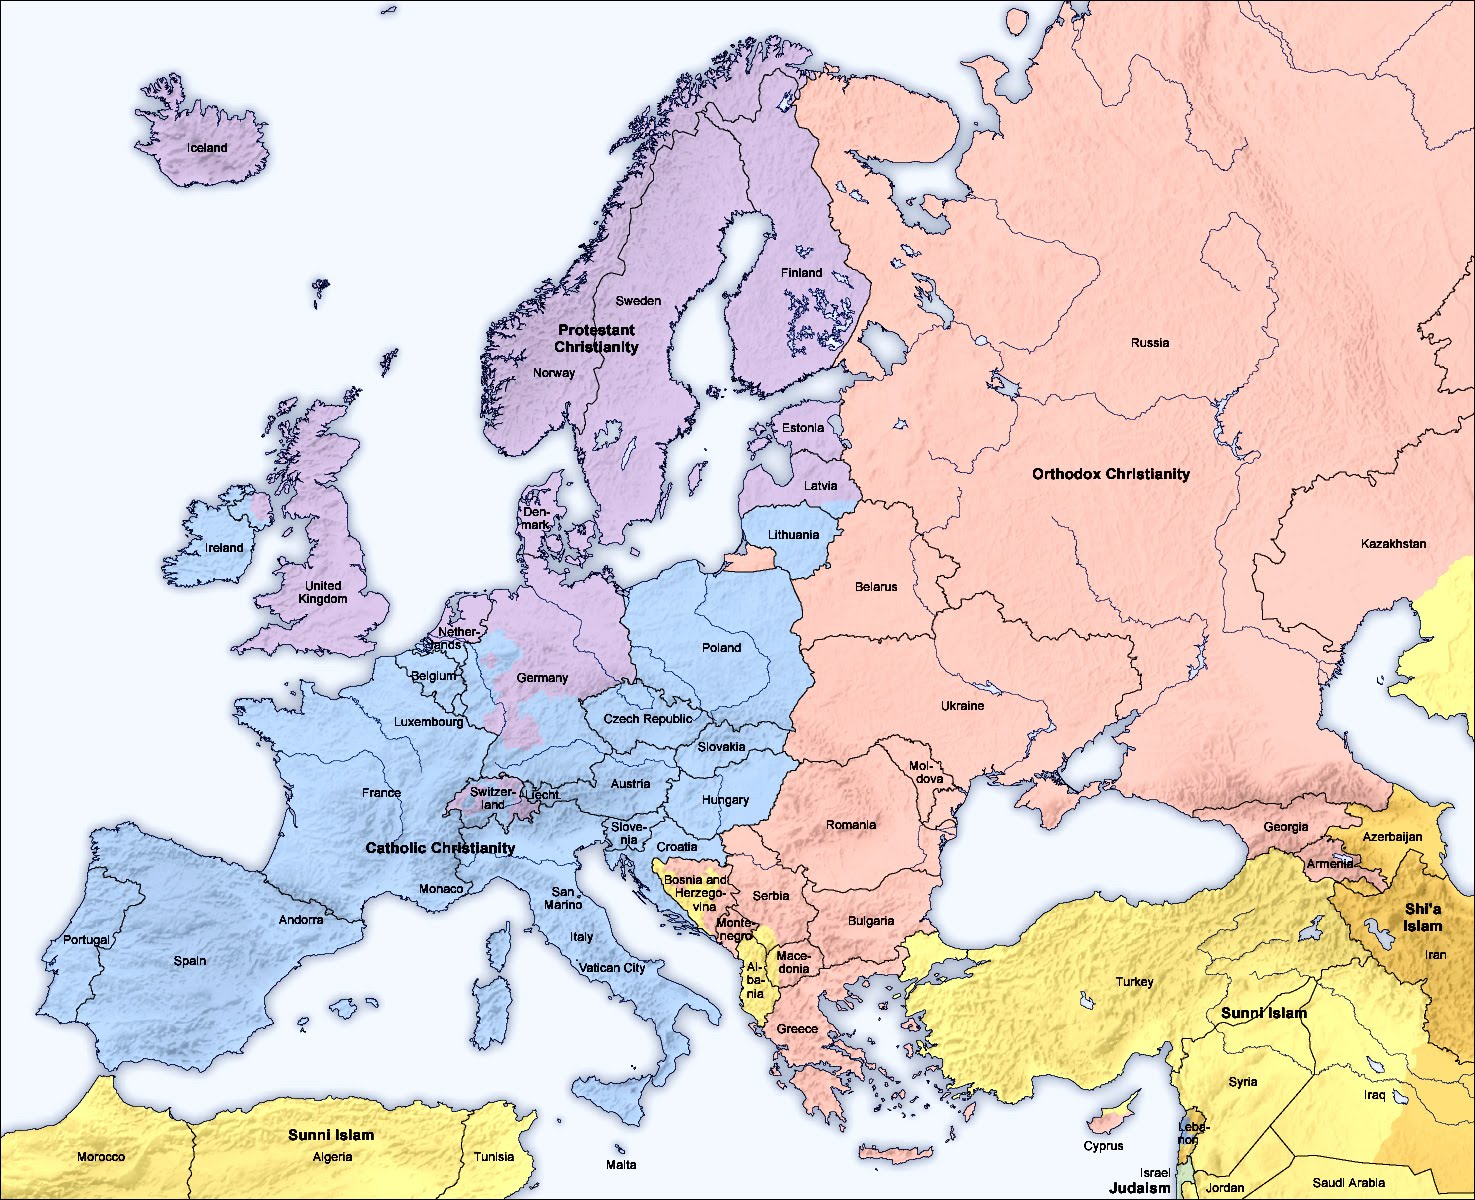 The Reformation Religious Map Of Europe C 1600 Answer Key.Continuing Counter Reformation 12 1 10 1 1 11